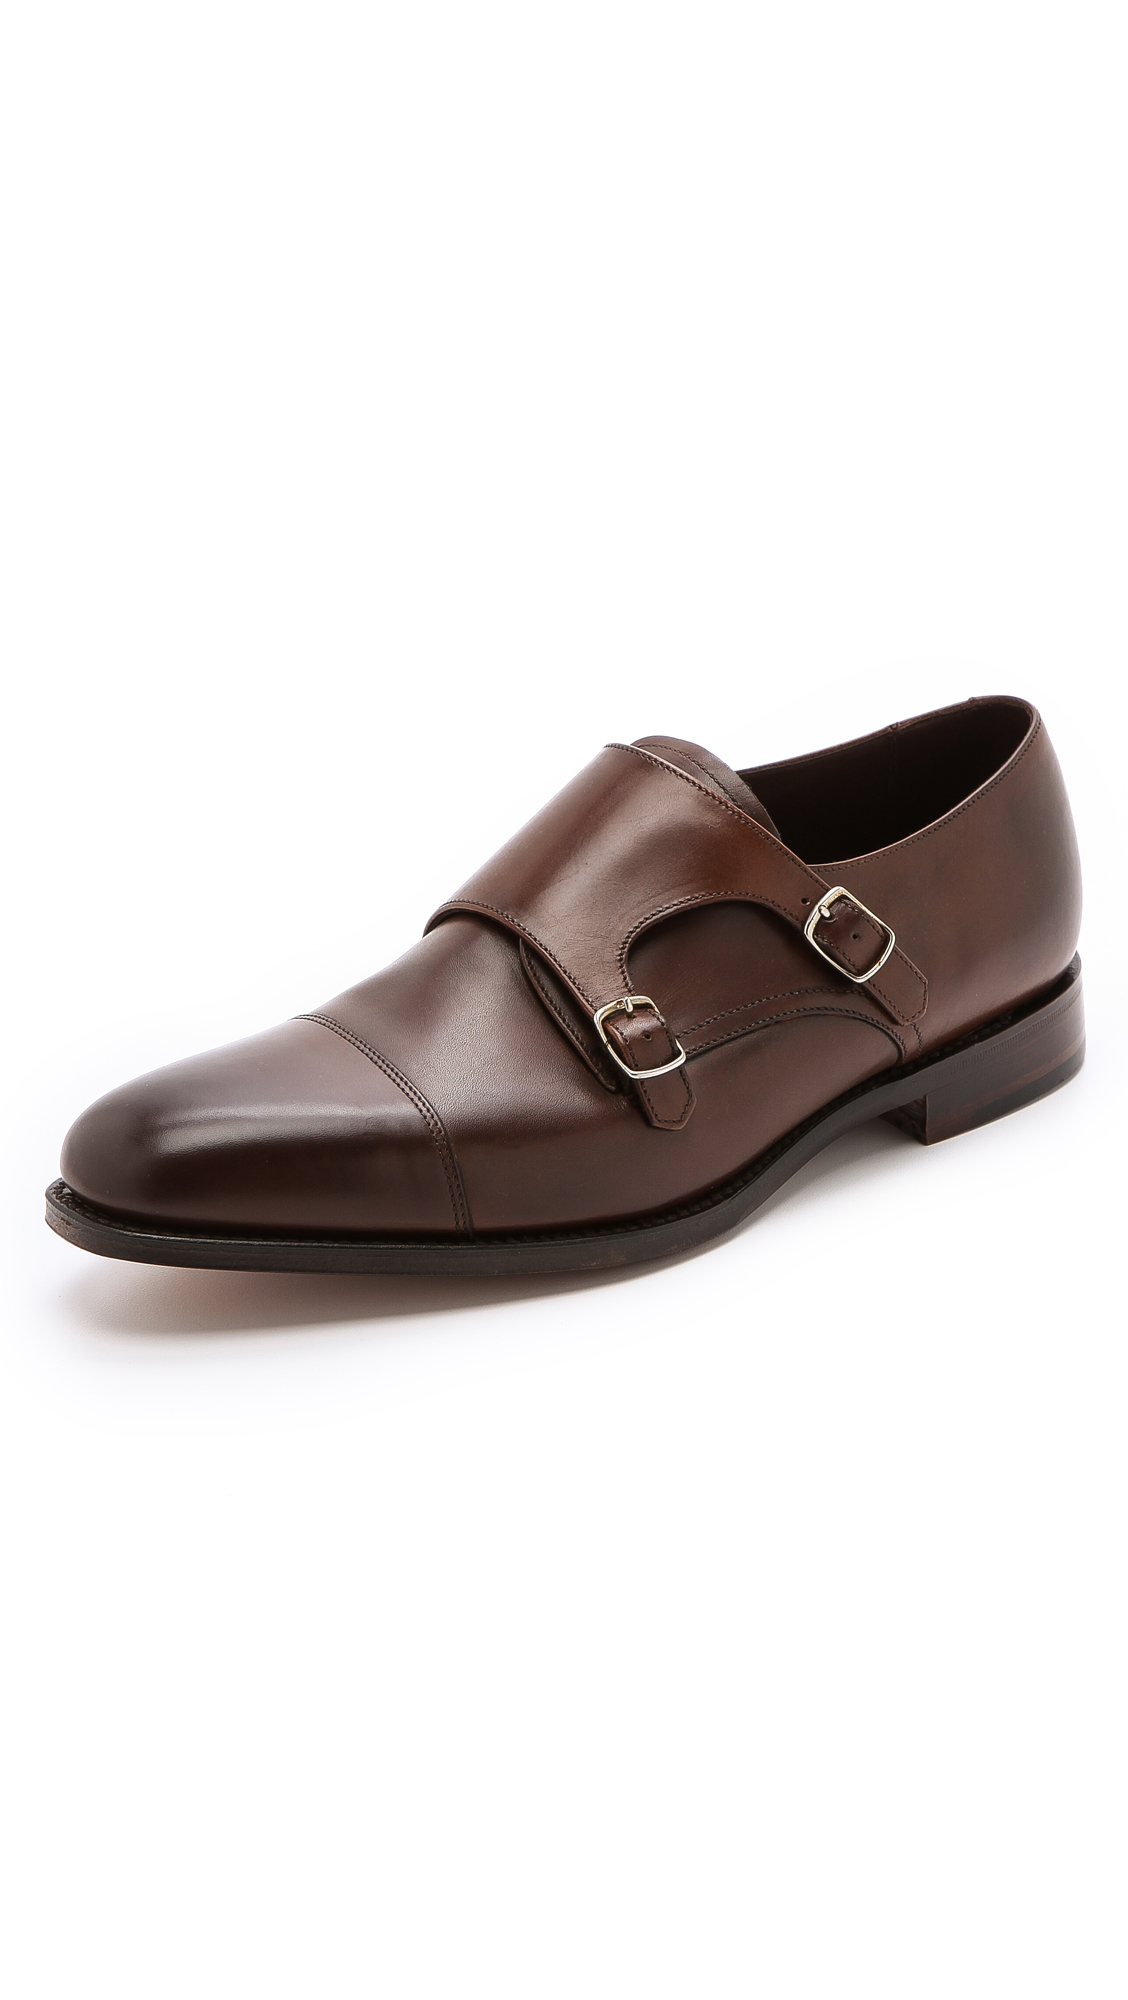 LOAKE 1880 1880 CANNON MONK STRAP SHOES